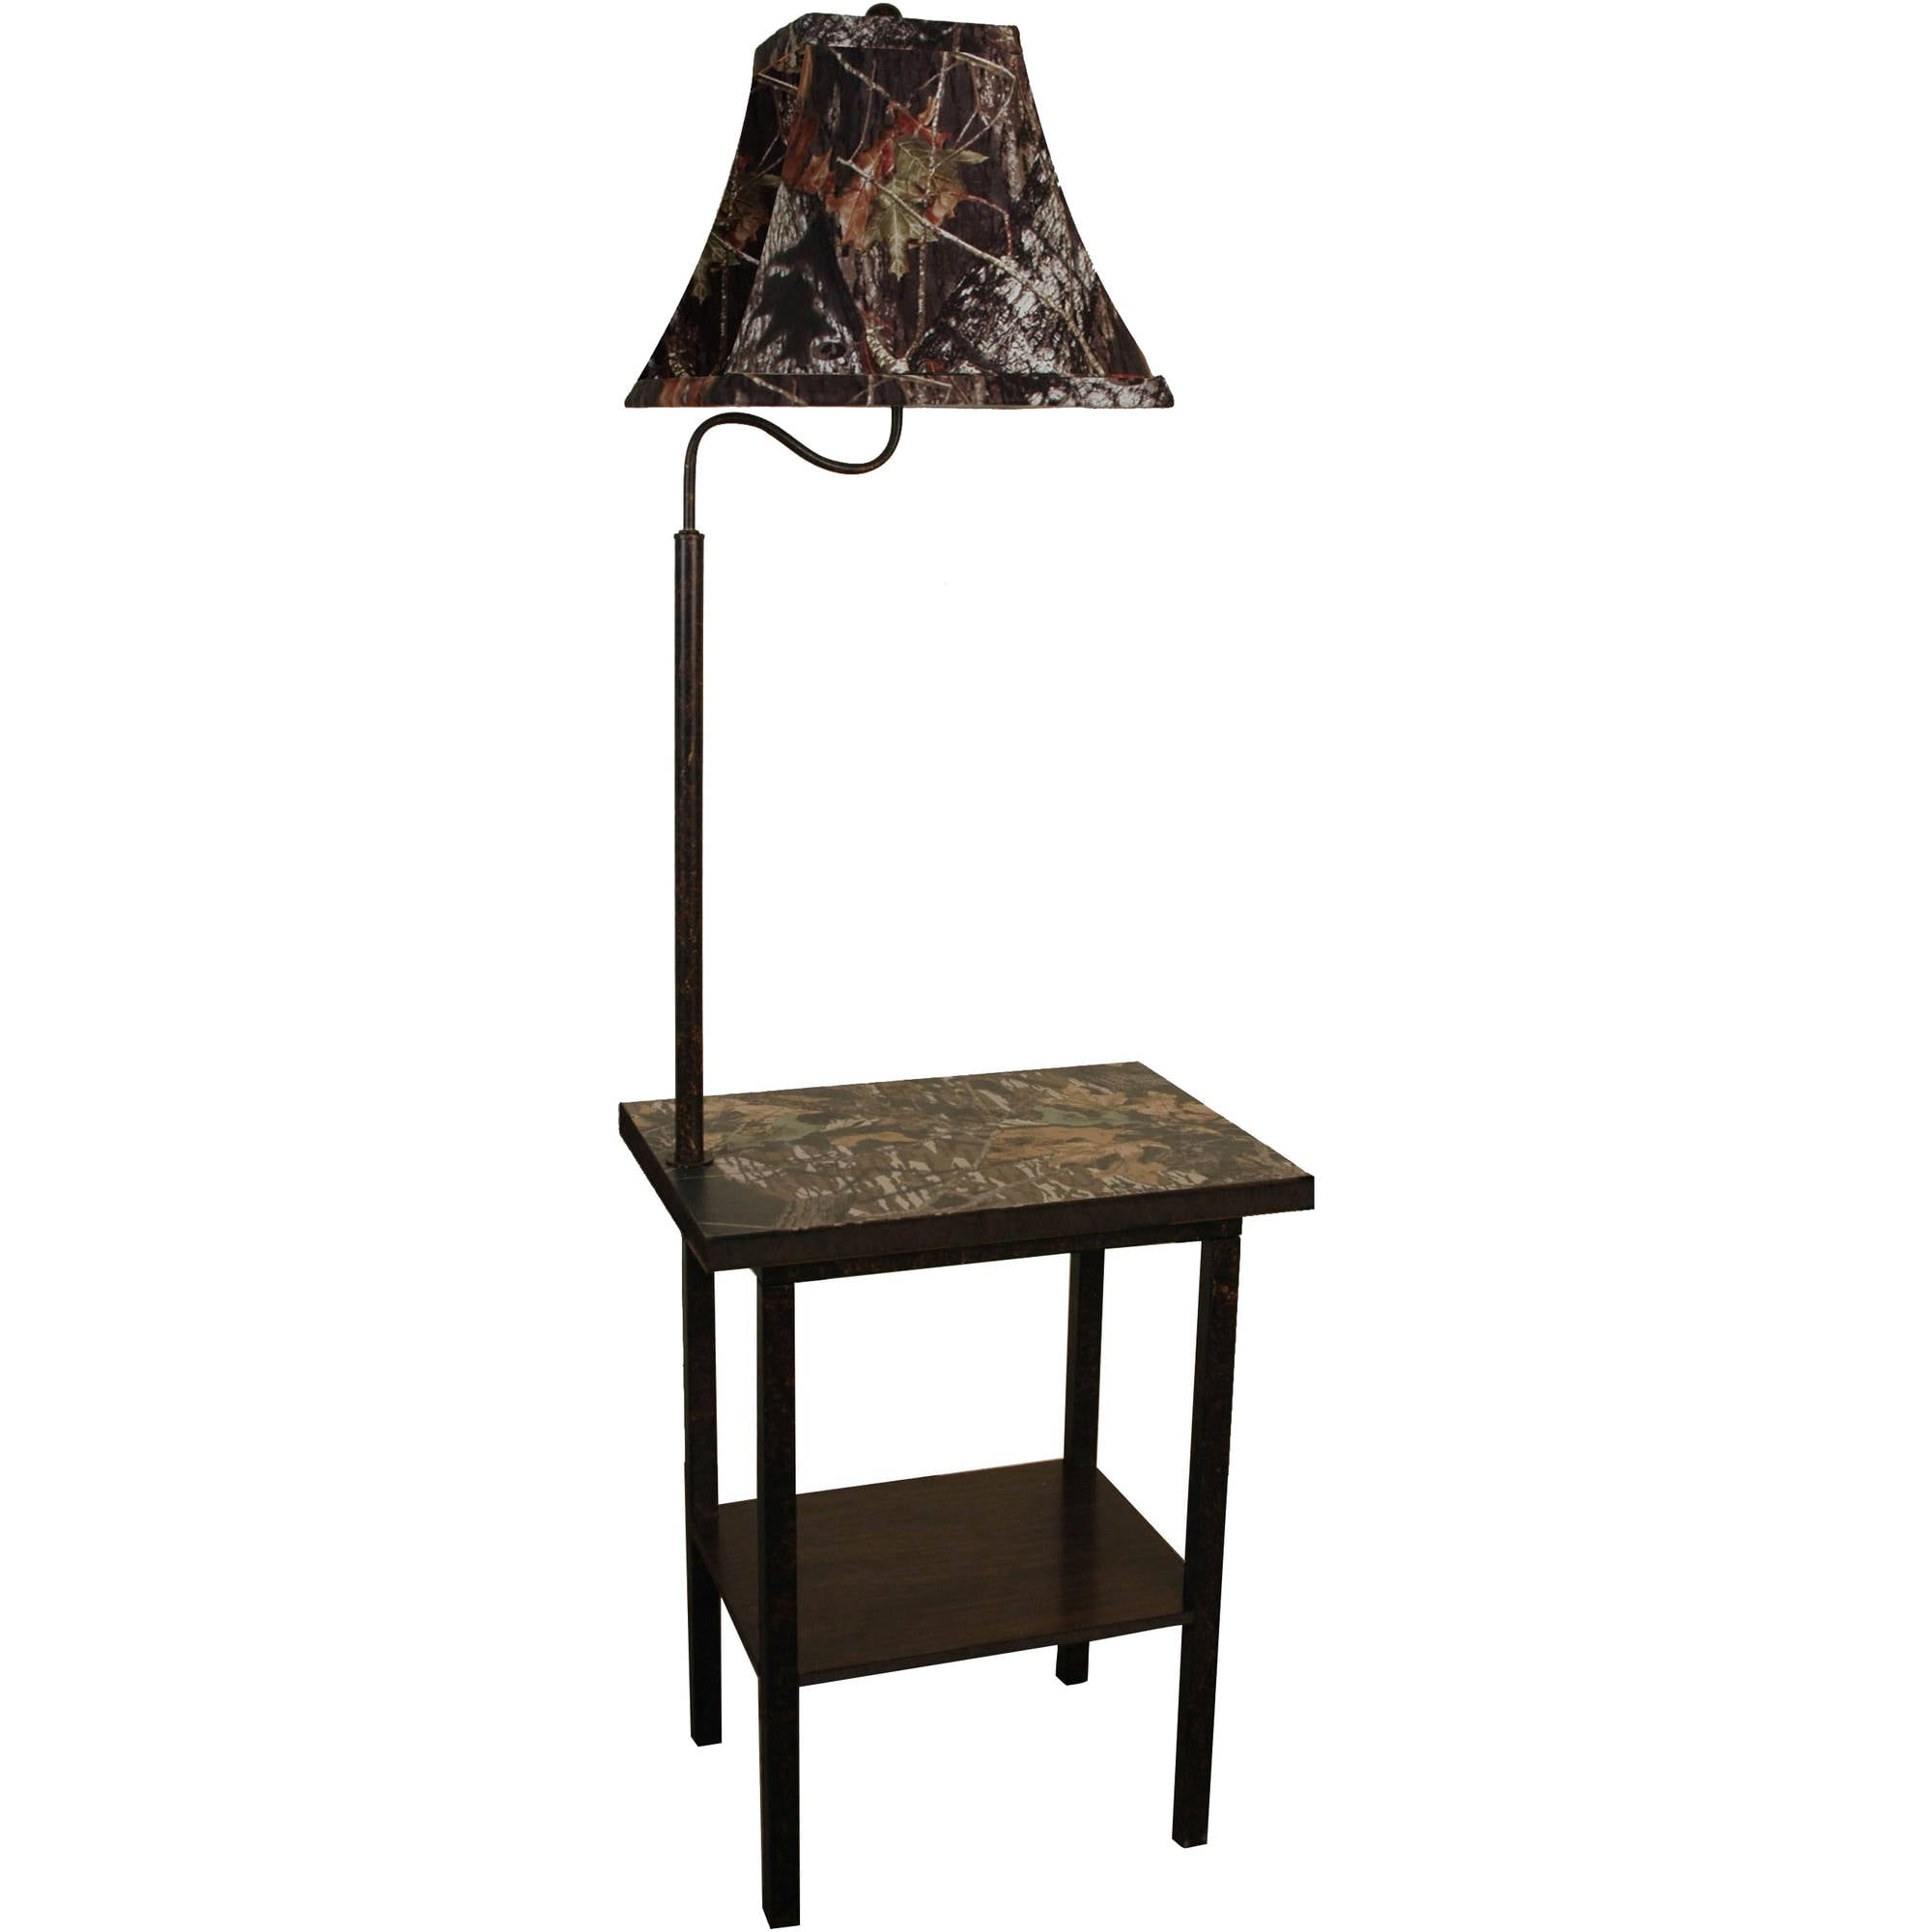 Delicieux Mossy Oak Furniture Floor Lamp, Brown